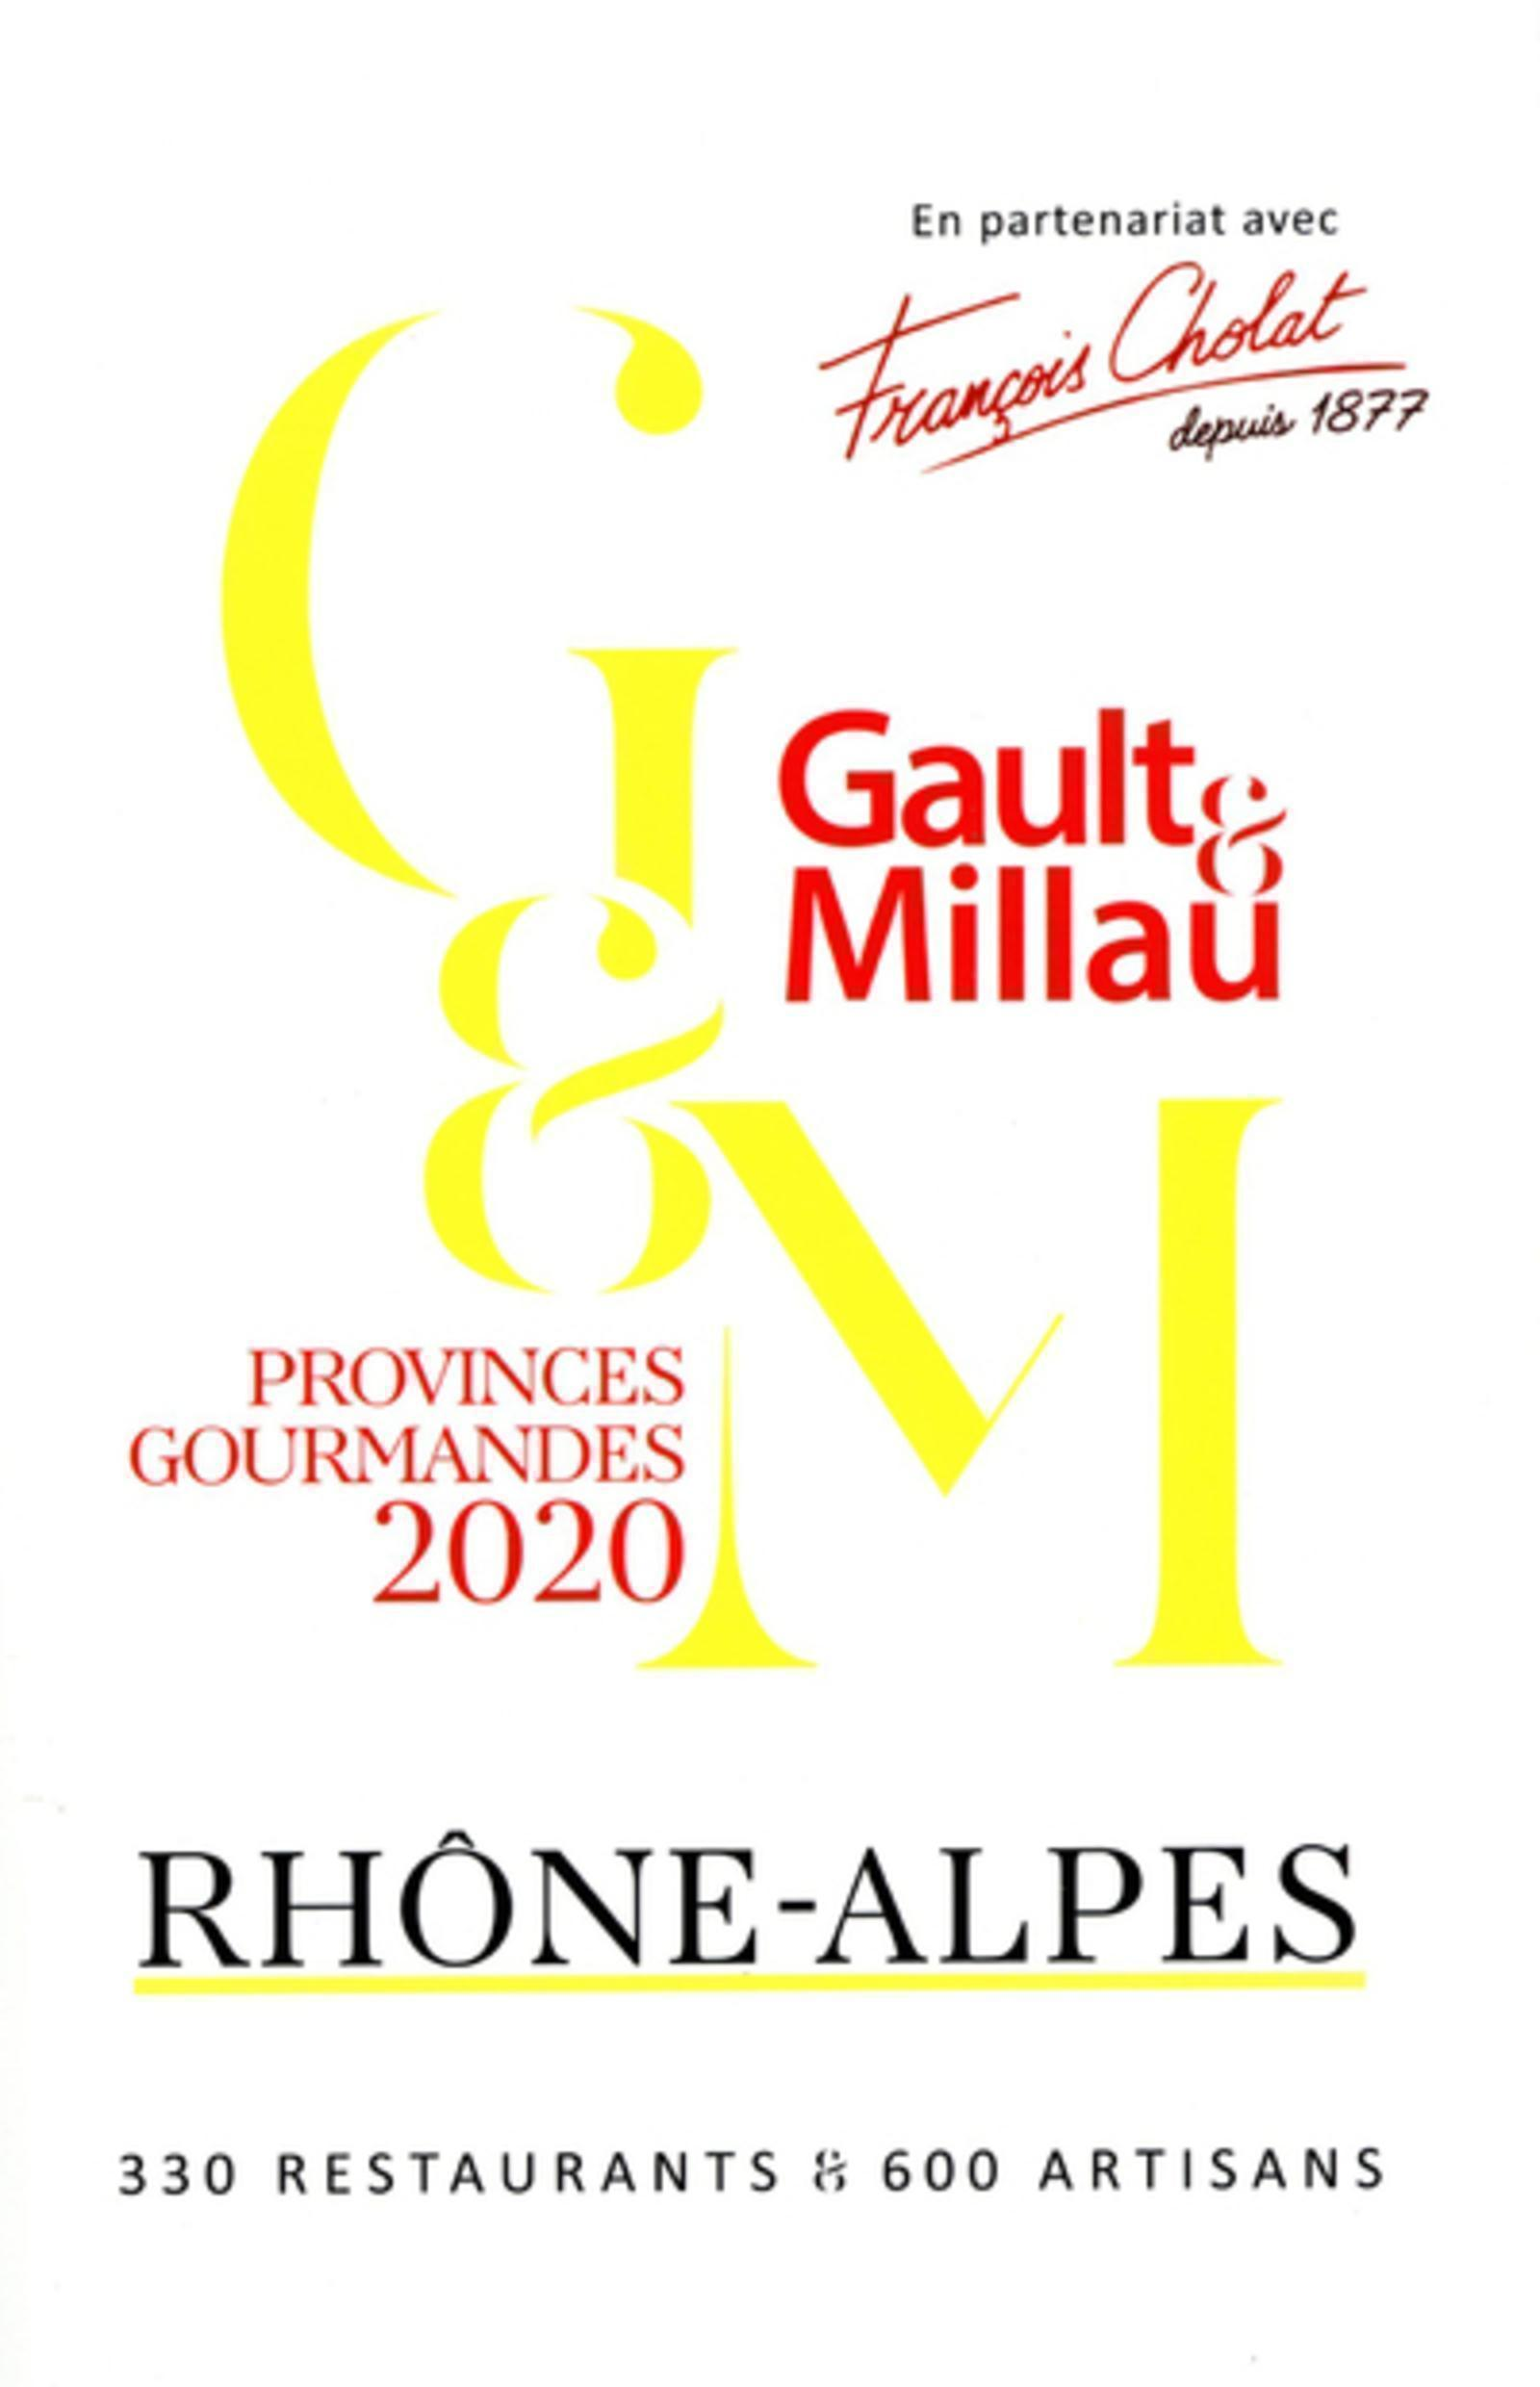 RHONE-ALPES 2020 - PROVINCES GOURMANDES